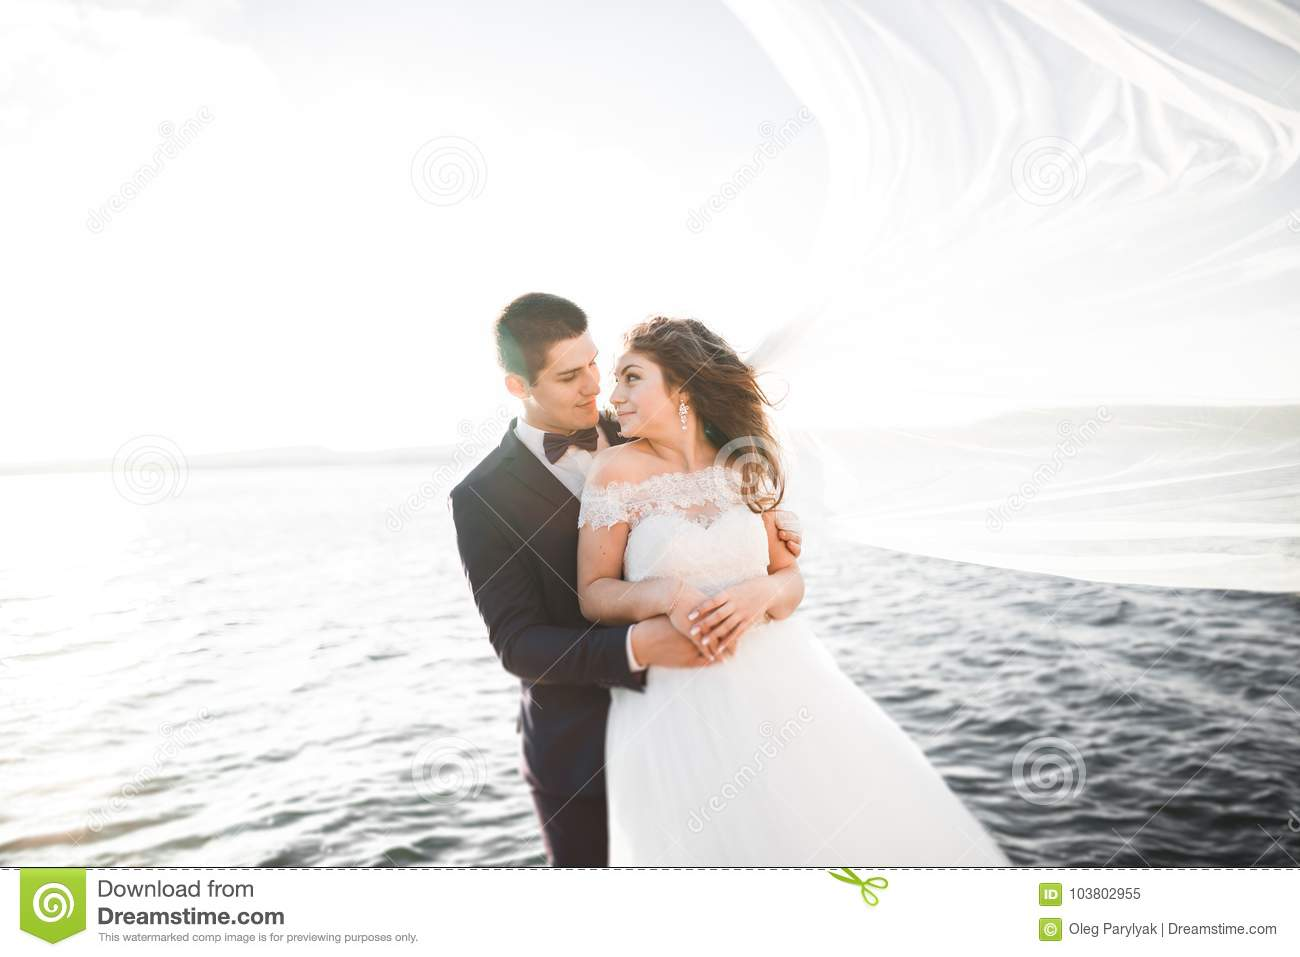 Happy And Romantic Scene Of Just Married Young Wedding Couple Posing On Beautiful Beach Stock Image Image Of Happy Female 103802955